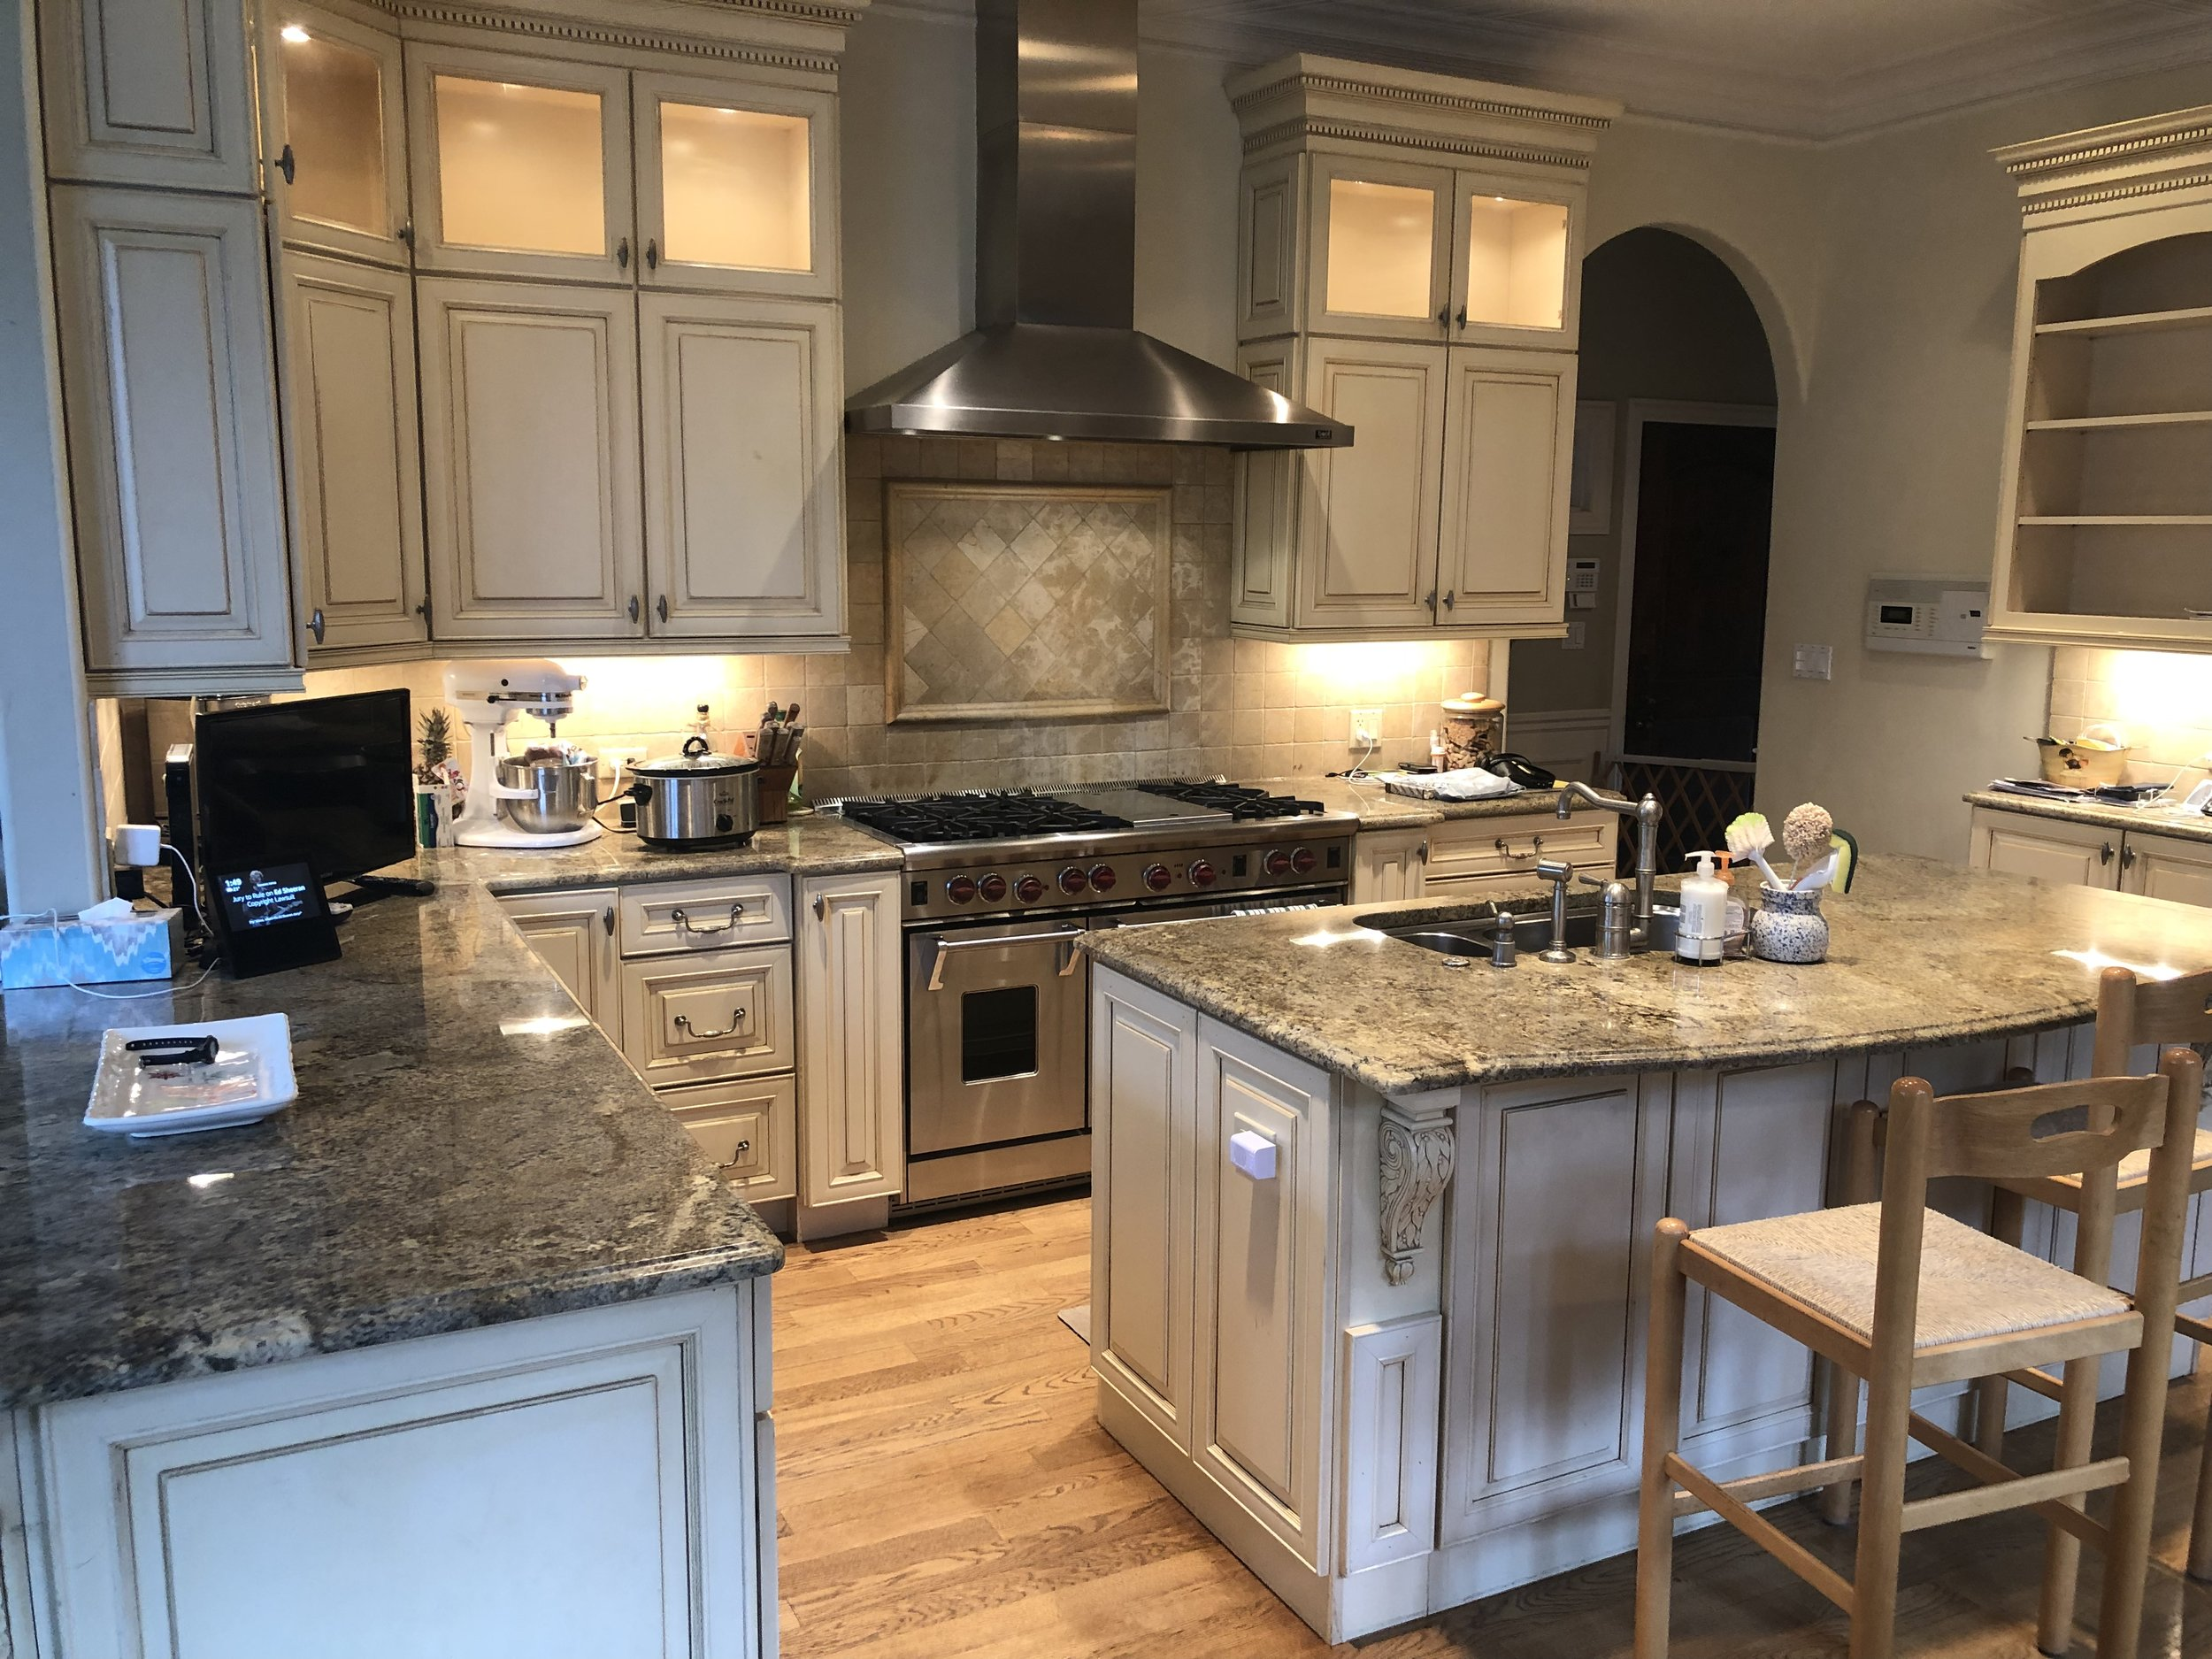 incredible deal complete french country wood kraftmaid kitchen wolf sub zero stainless steel granite counters priced to sell little green kitchens